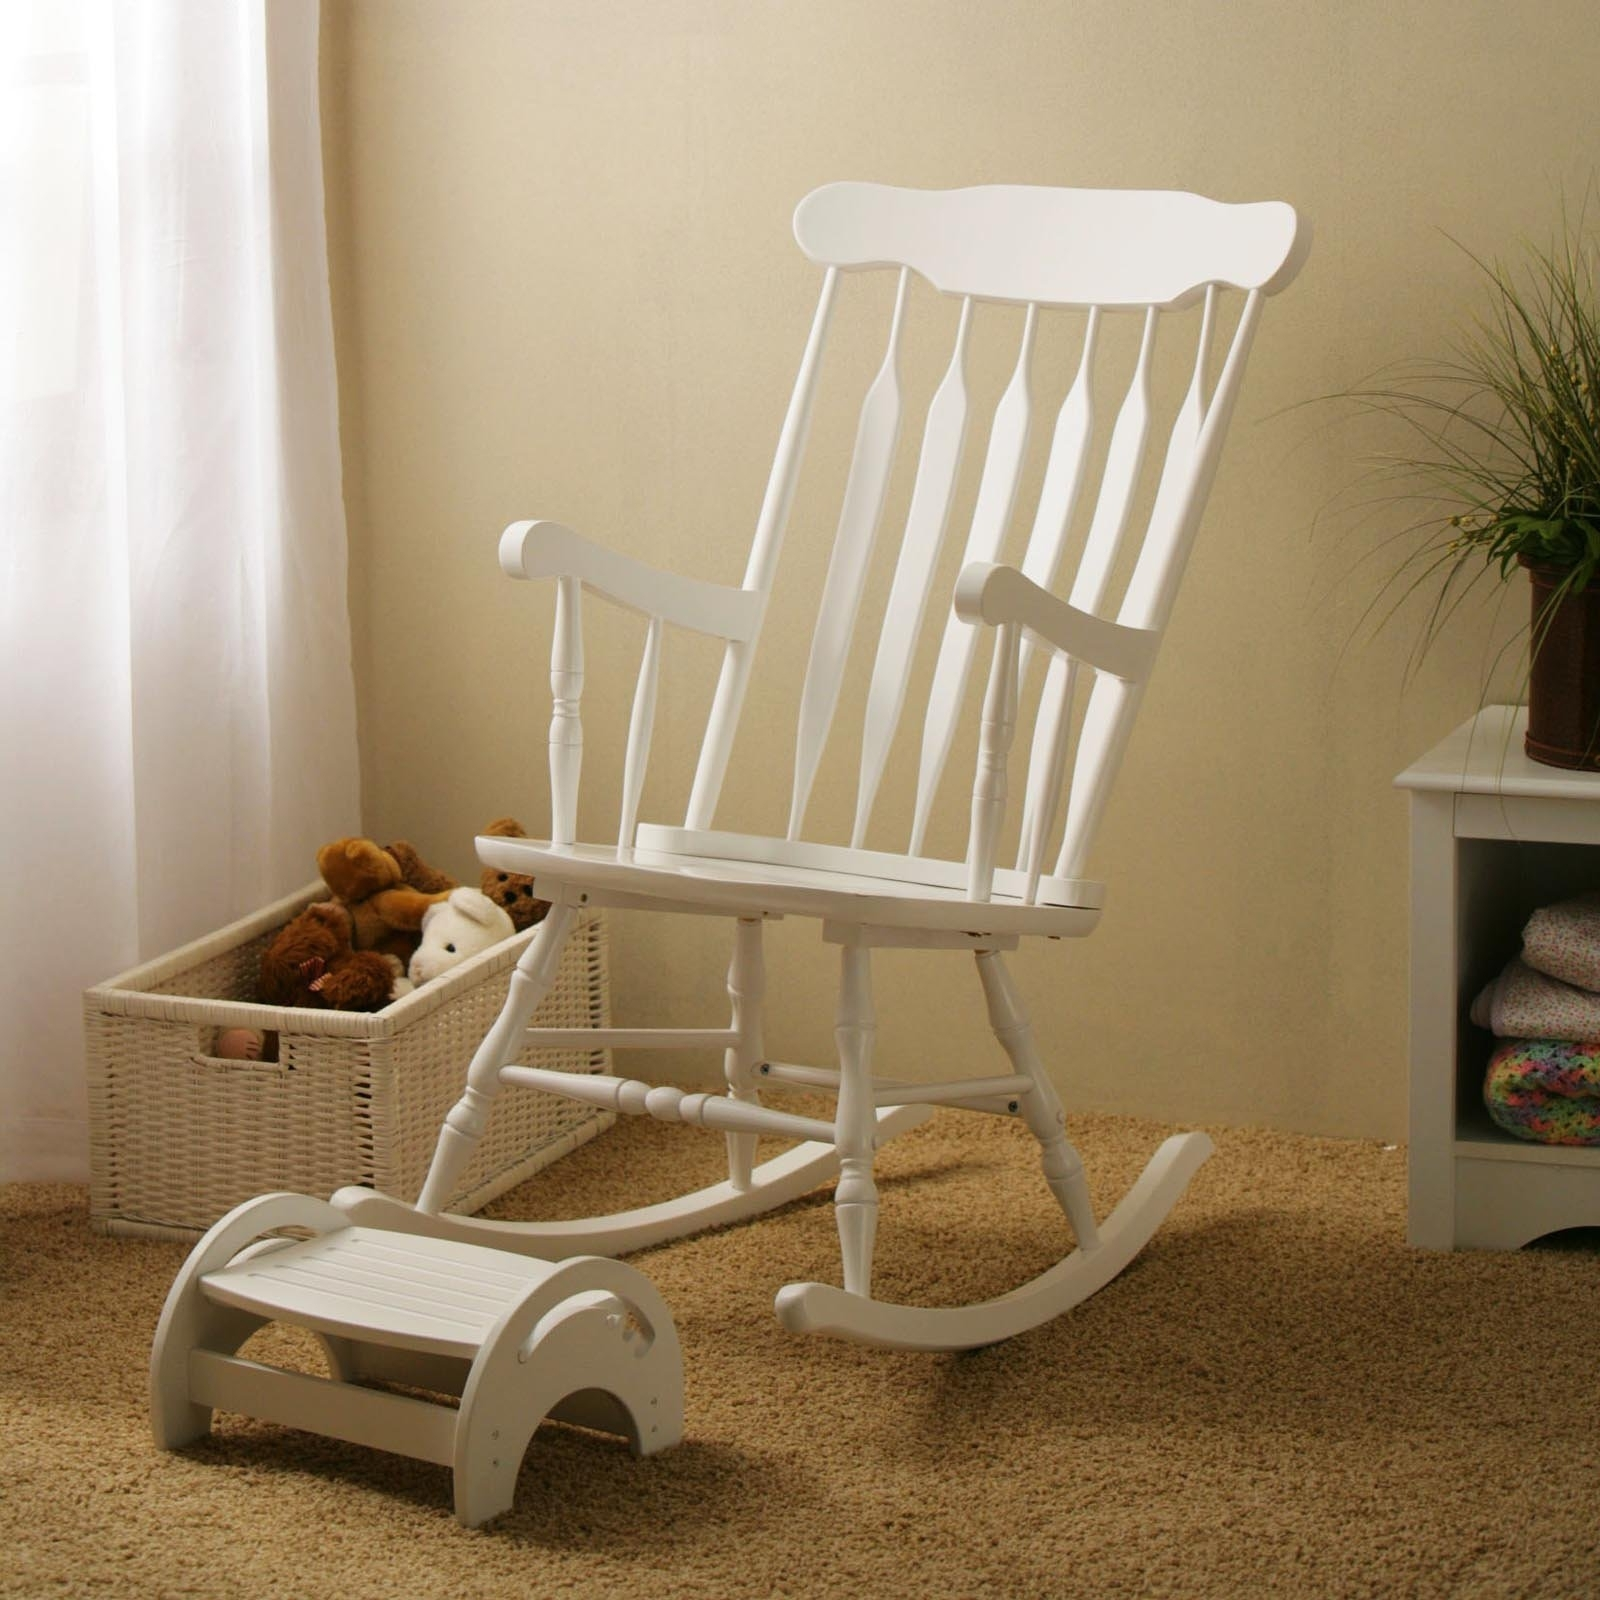 Rocking Chairs For Nursing With Current Nursery Rocking Chair (View 15 of 20)